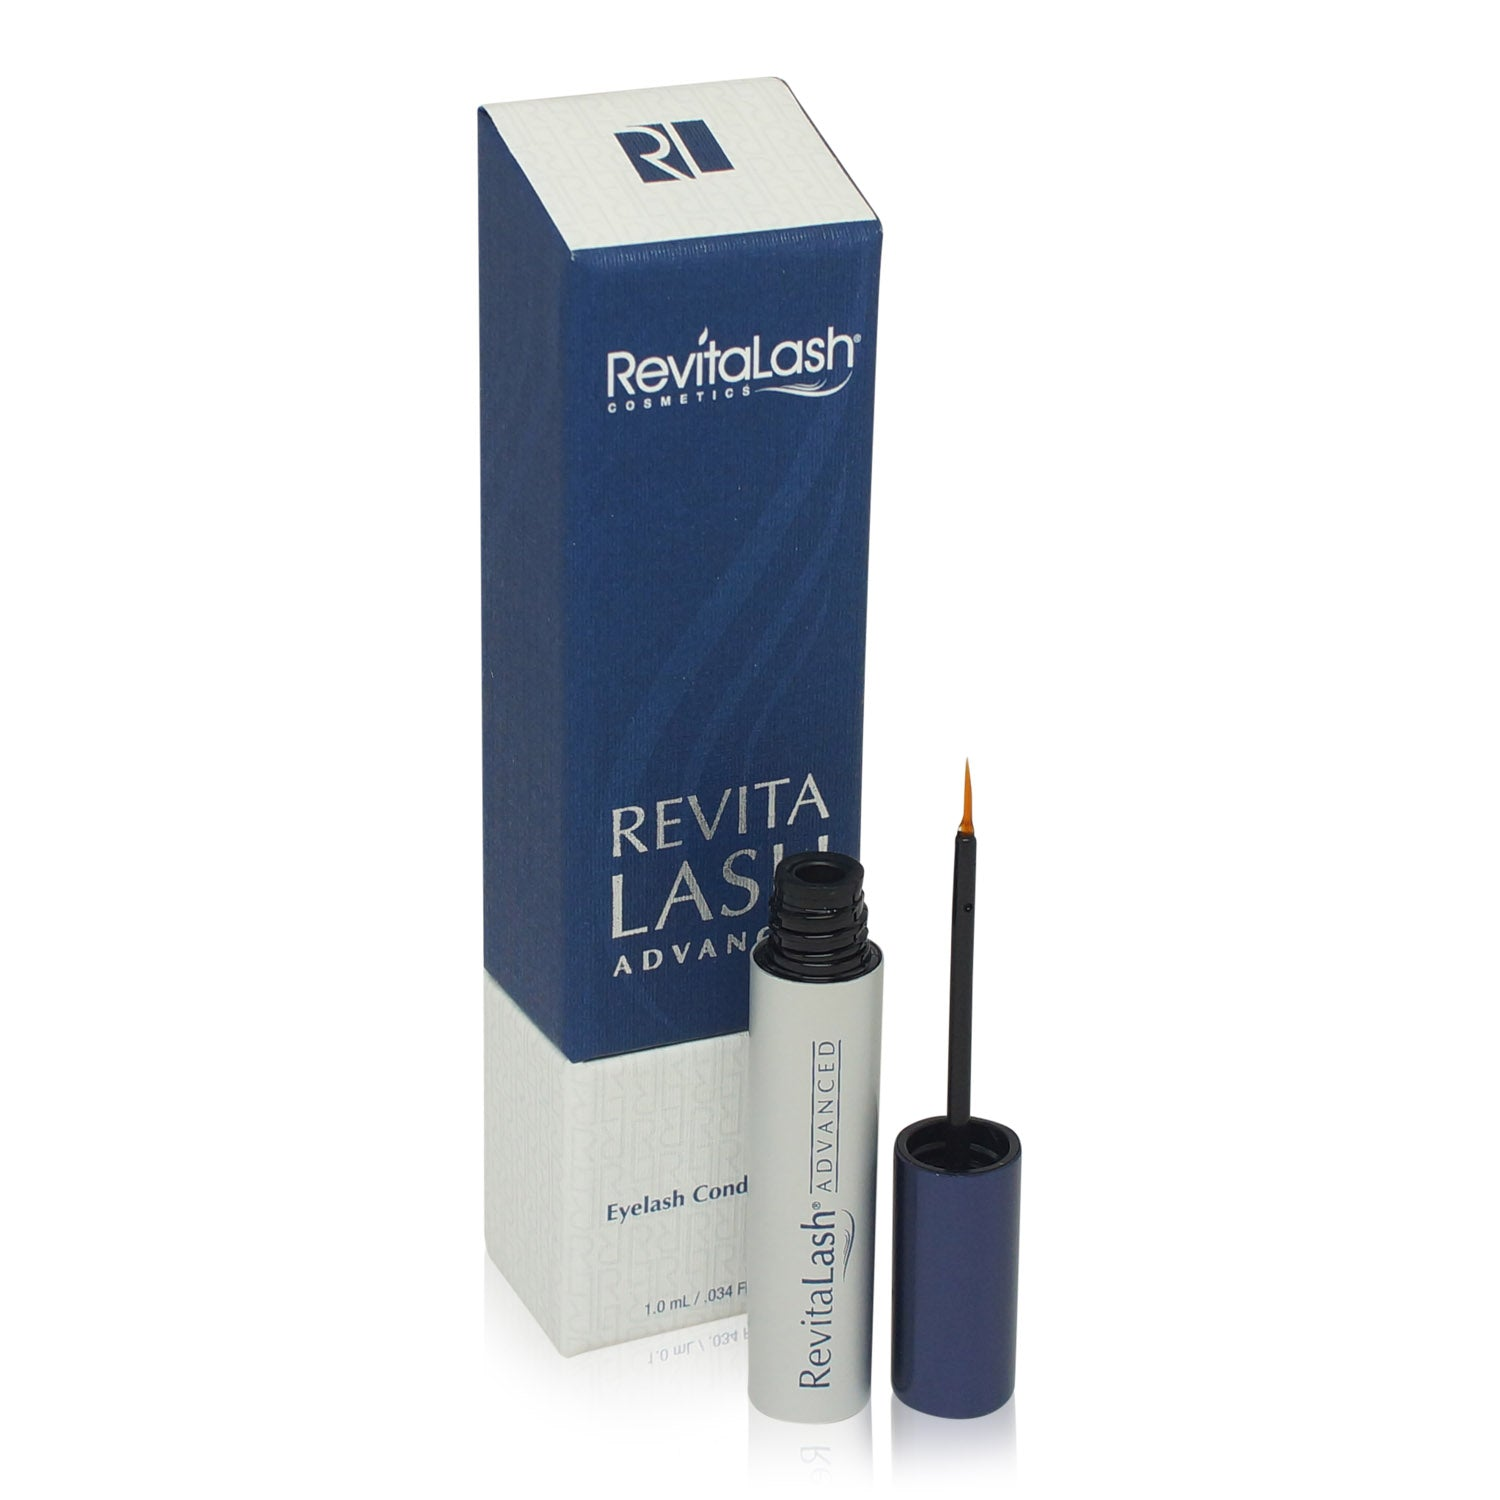 REVITALASH ~ REVITALASH ADVANCED 1.0ML RETAIL